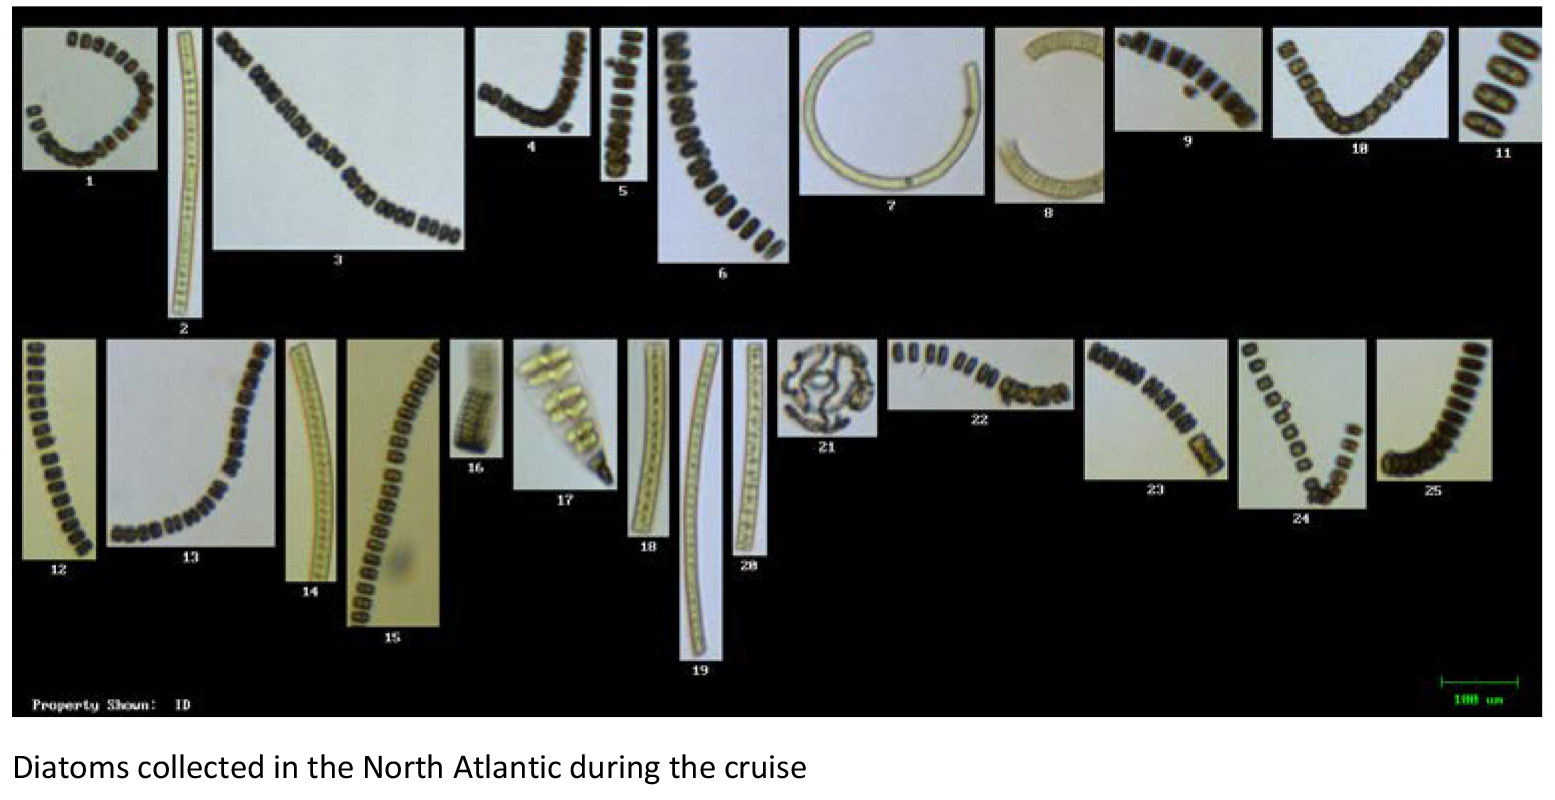 Diatoms_collected_in_the_North_Atlantic